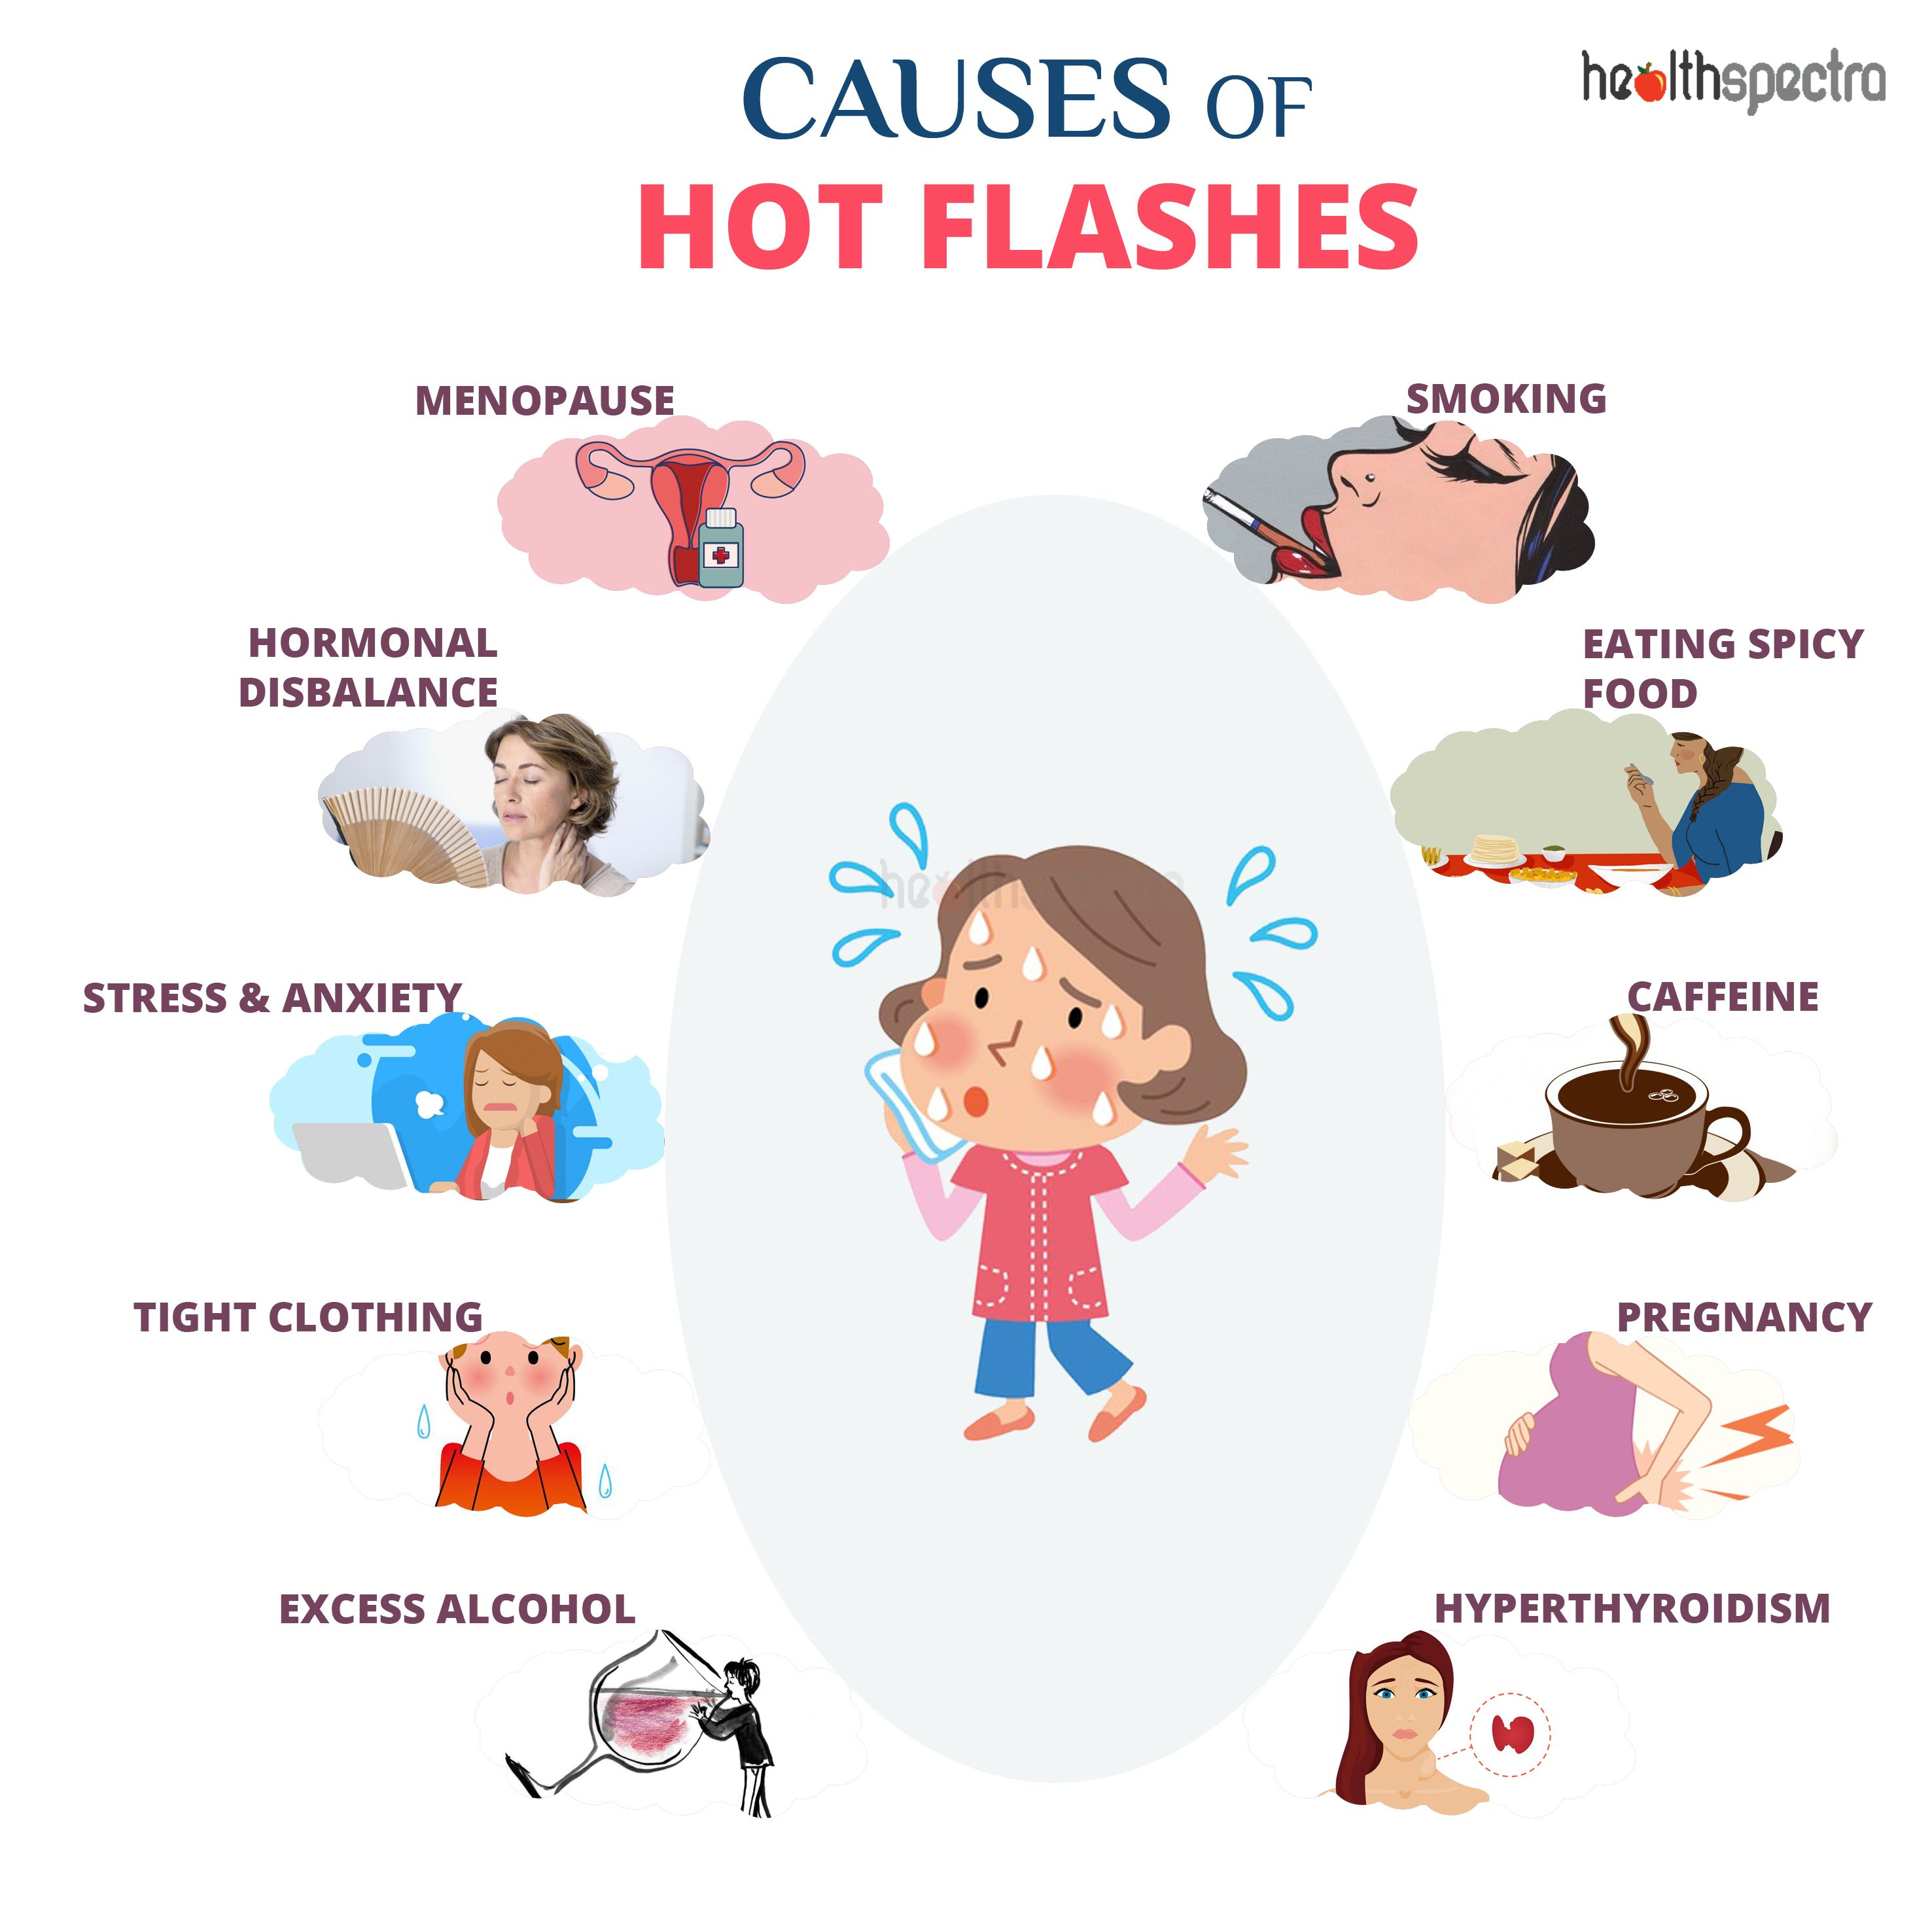 Causes of Hot Flashes